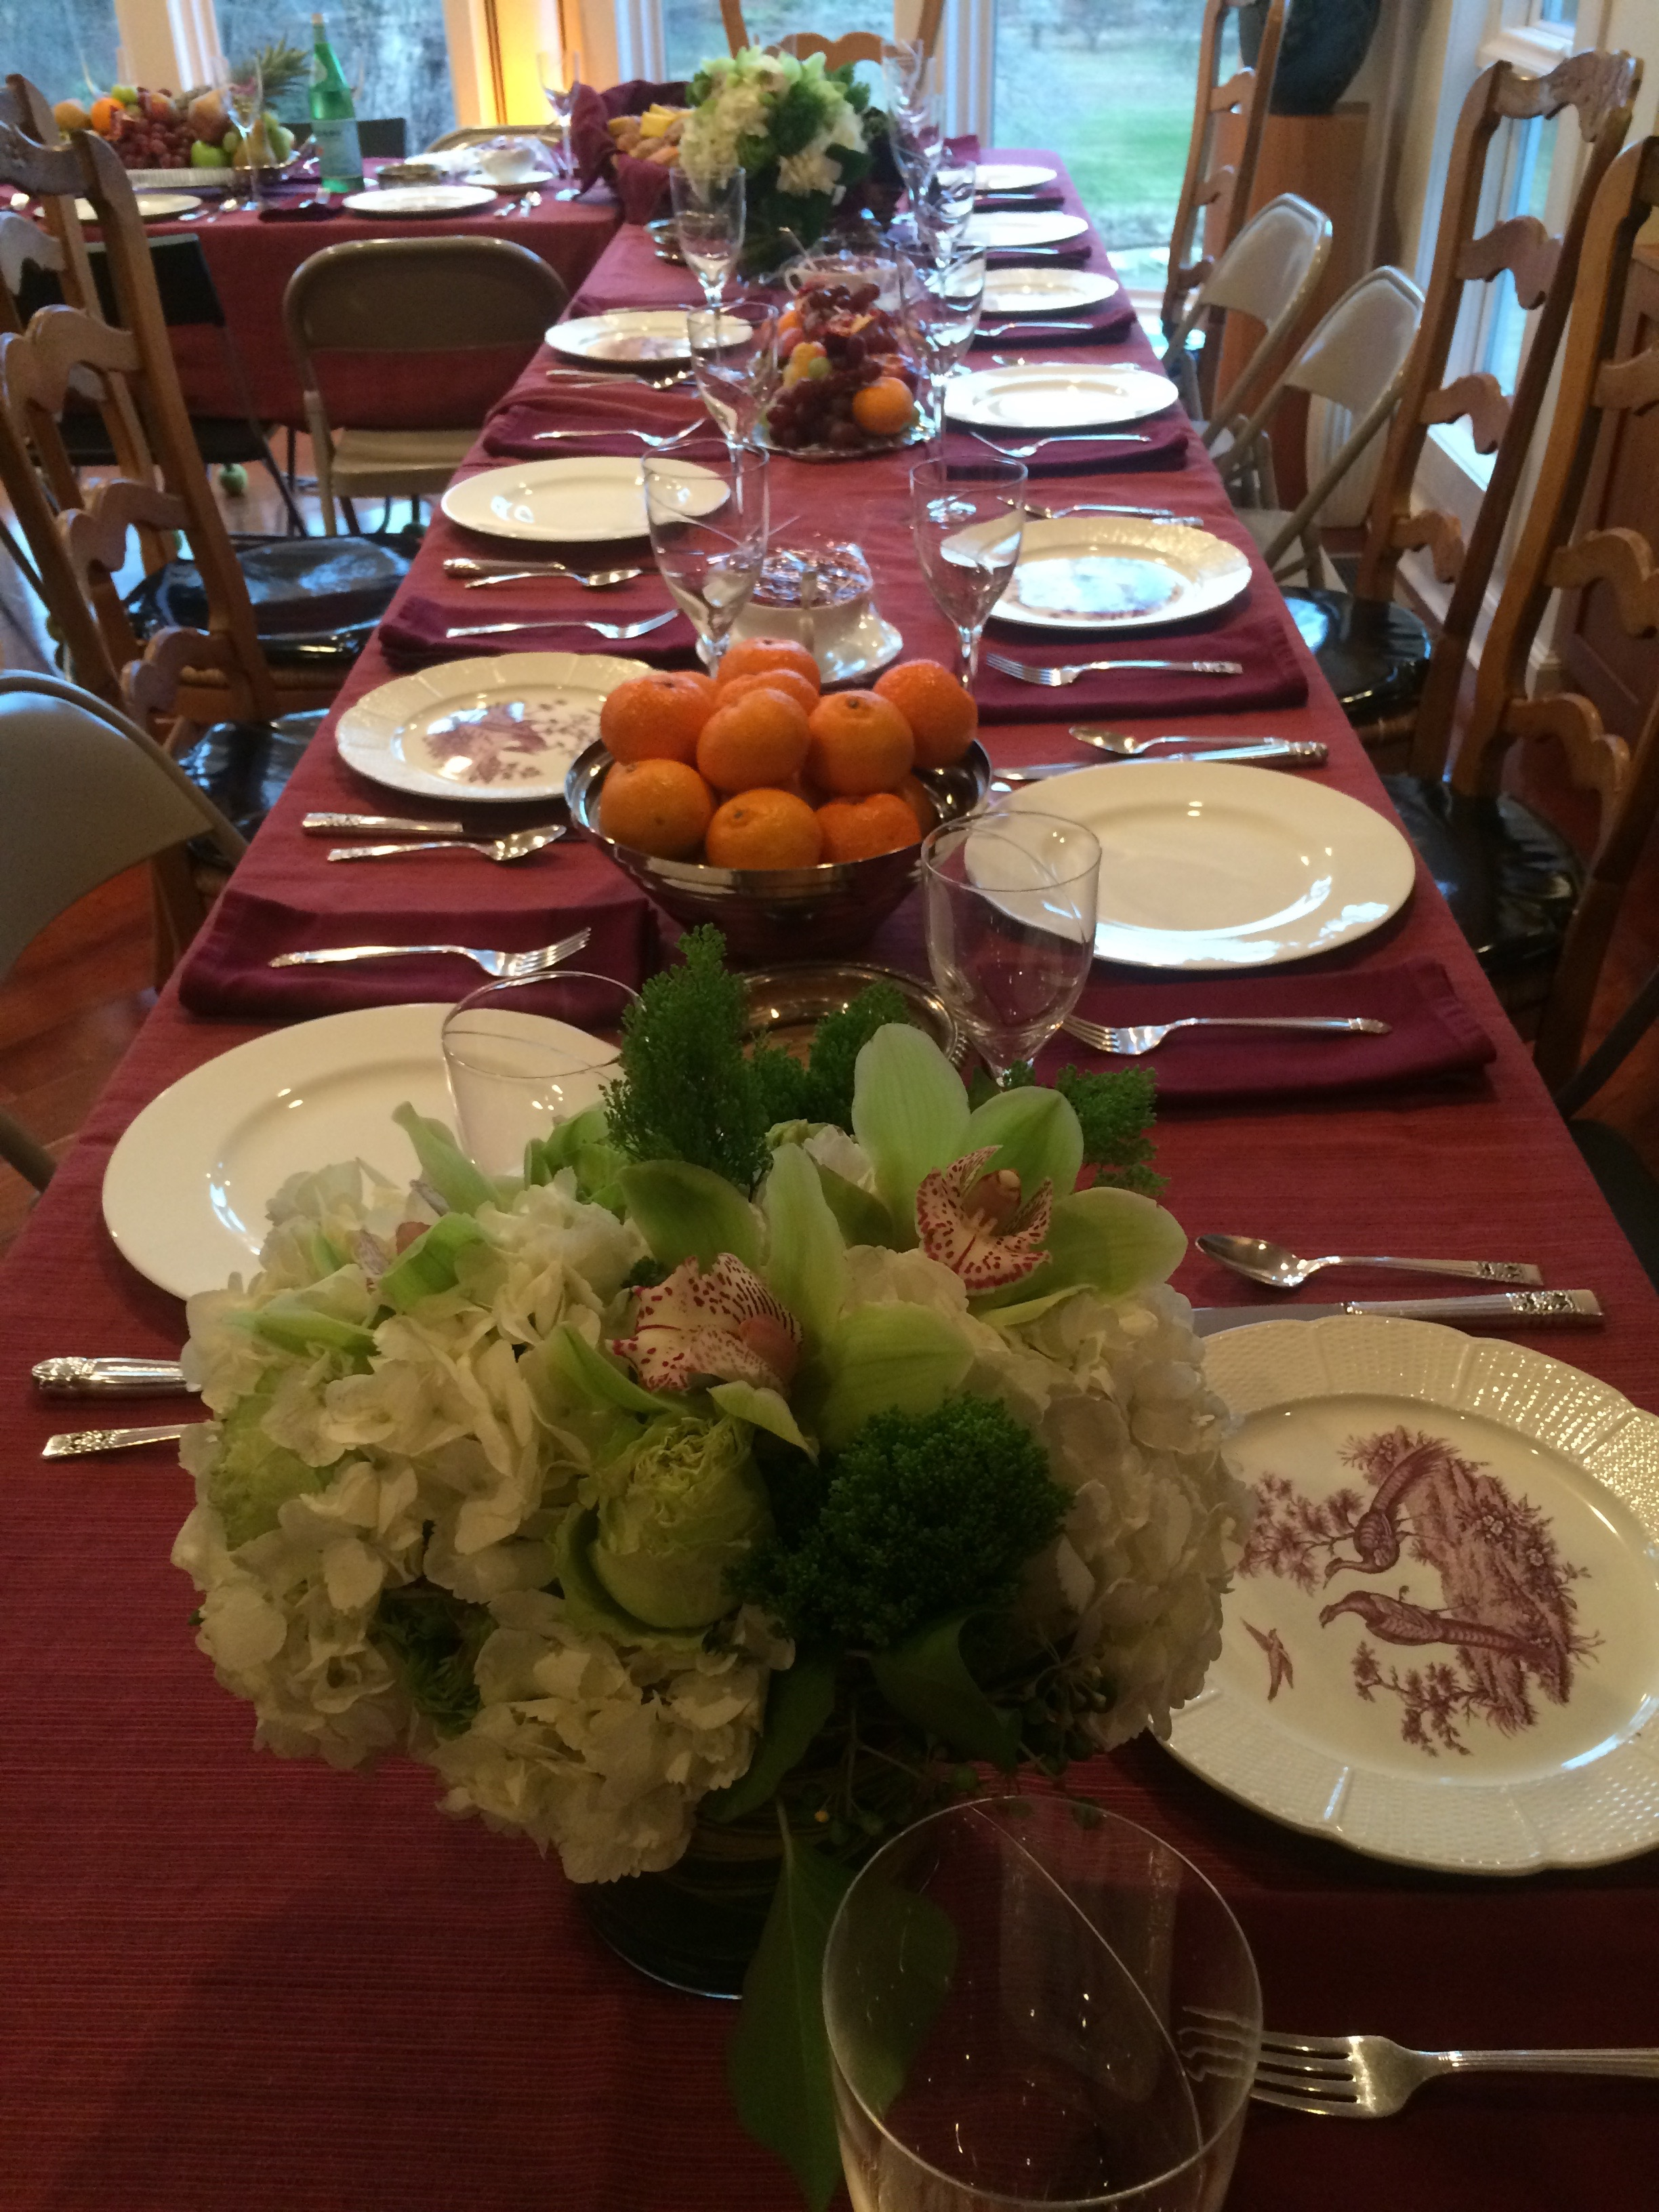 My mother's beautiful Thanksgiving table.